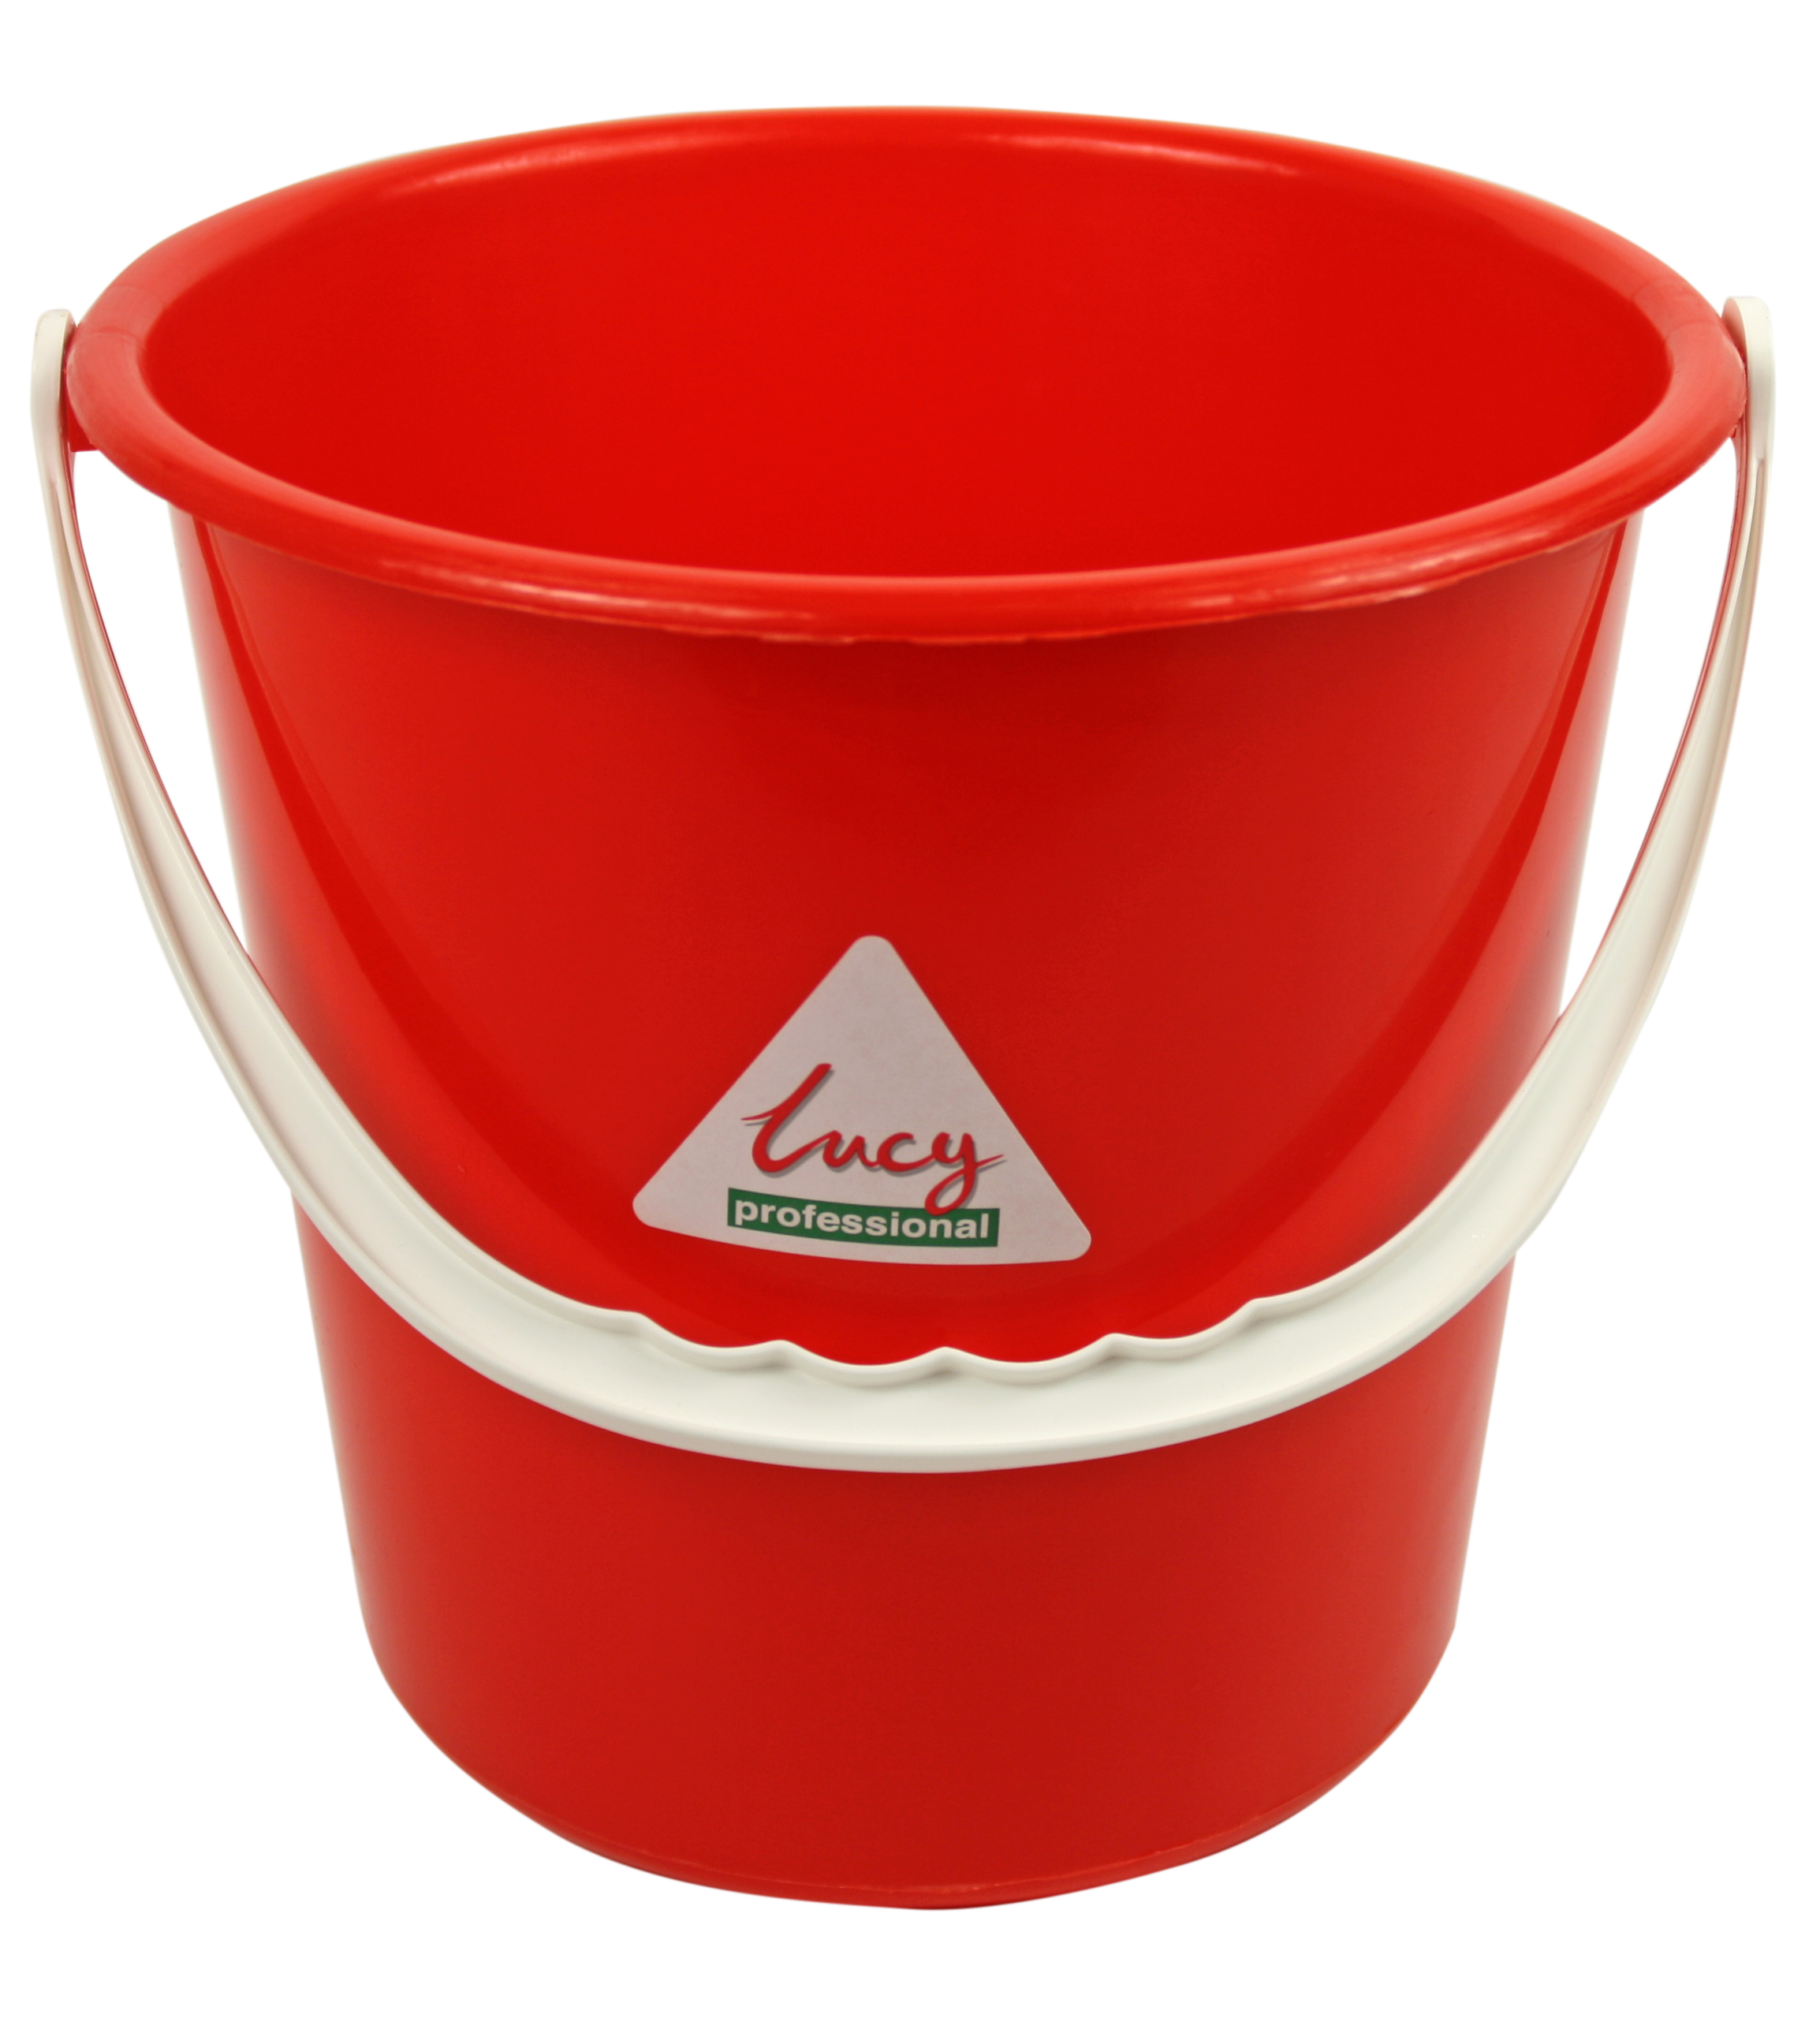 Lucy Bucket Red Cleanwipes Ltd